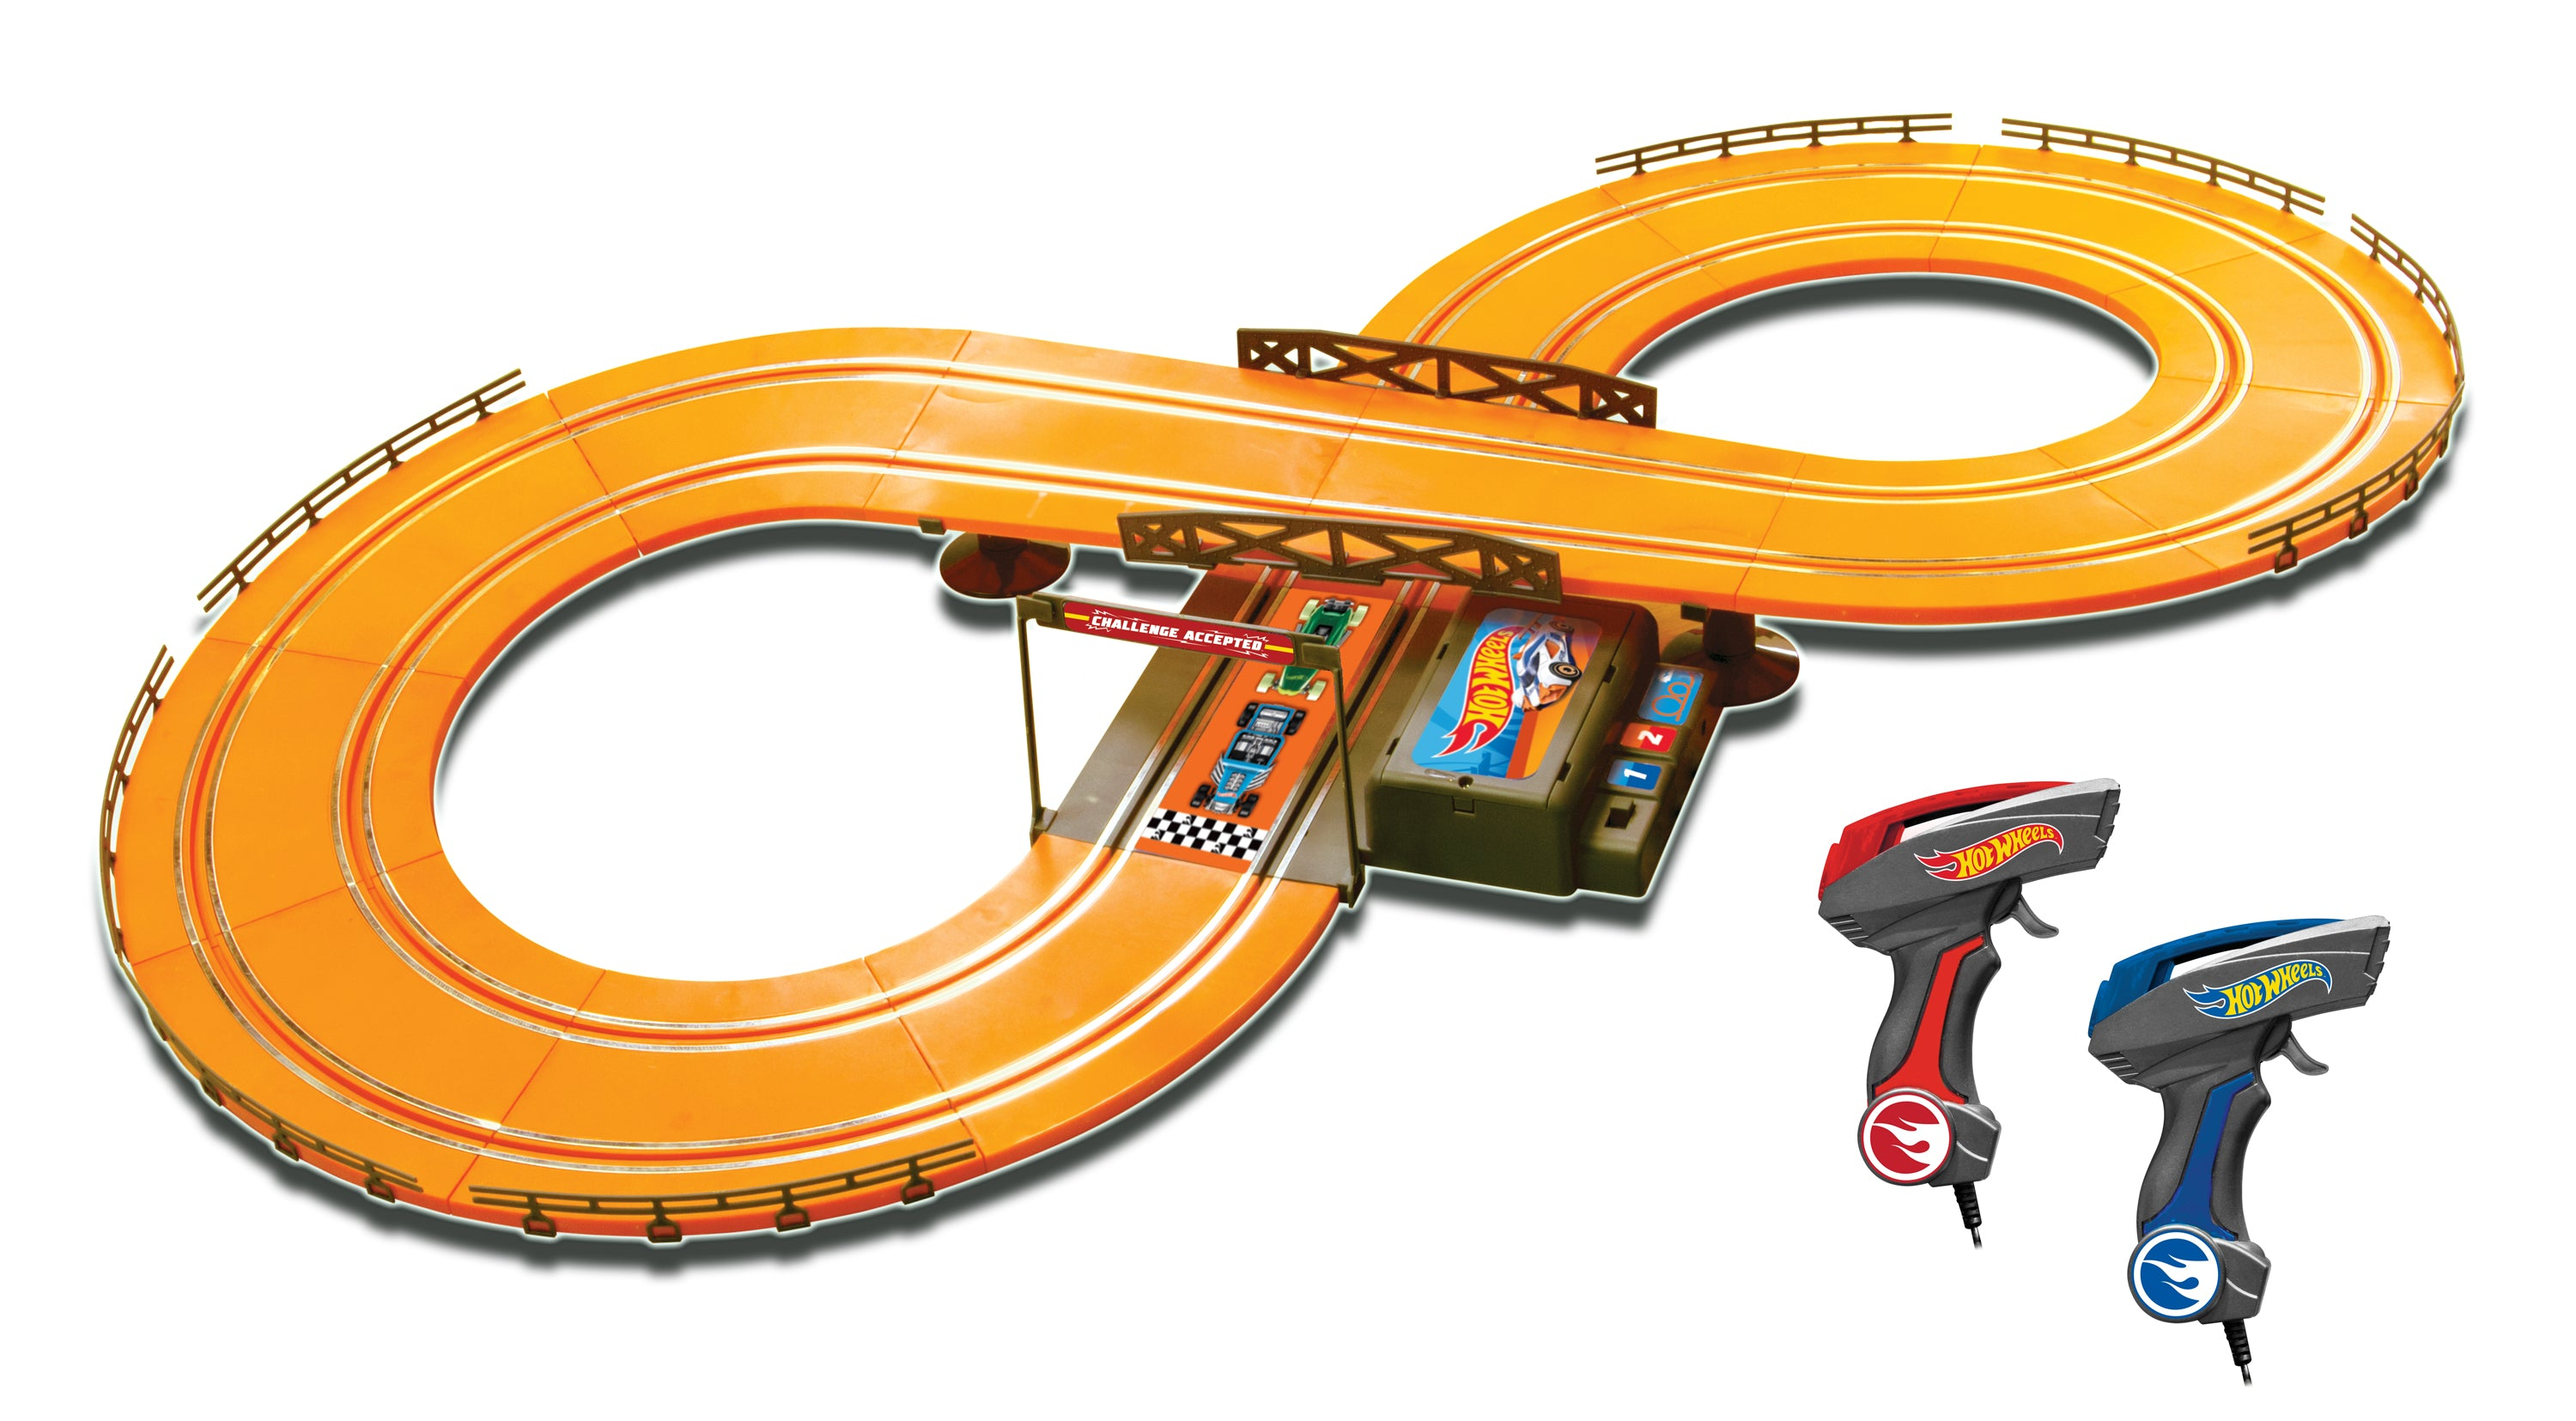 1:43 Hot Wheels Slot Track Set - 9.3 ft (battery operated)